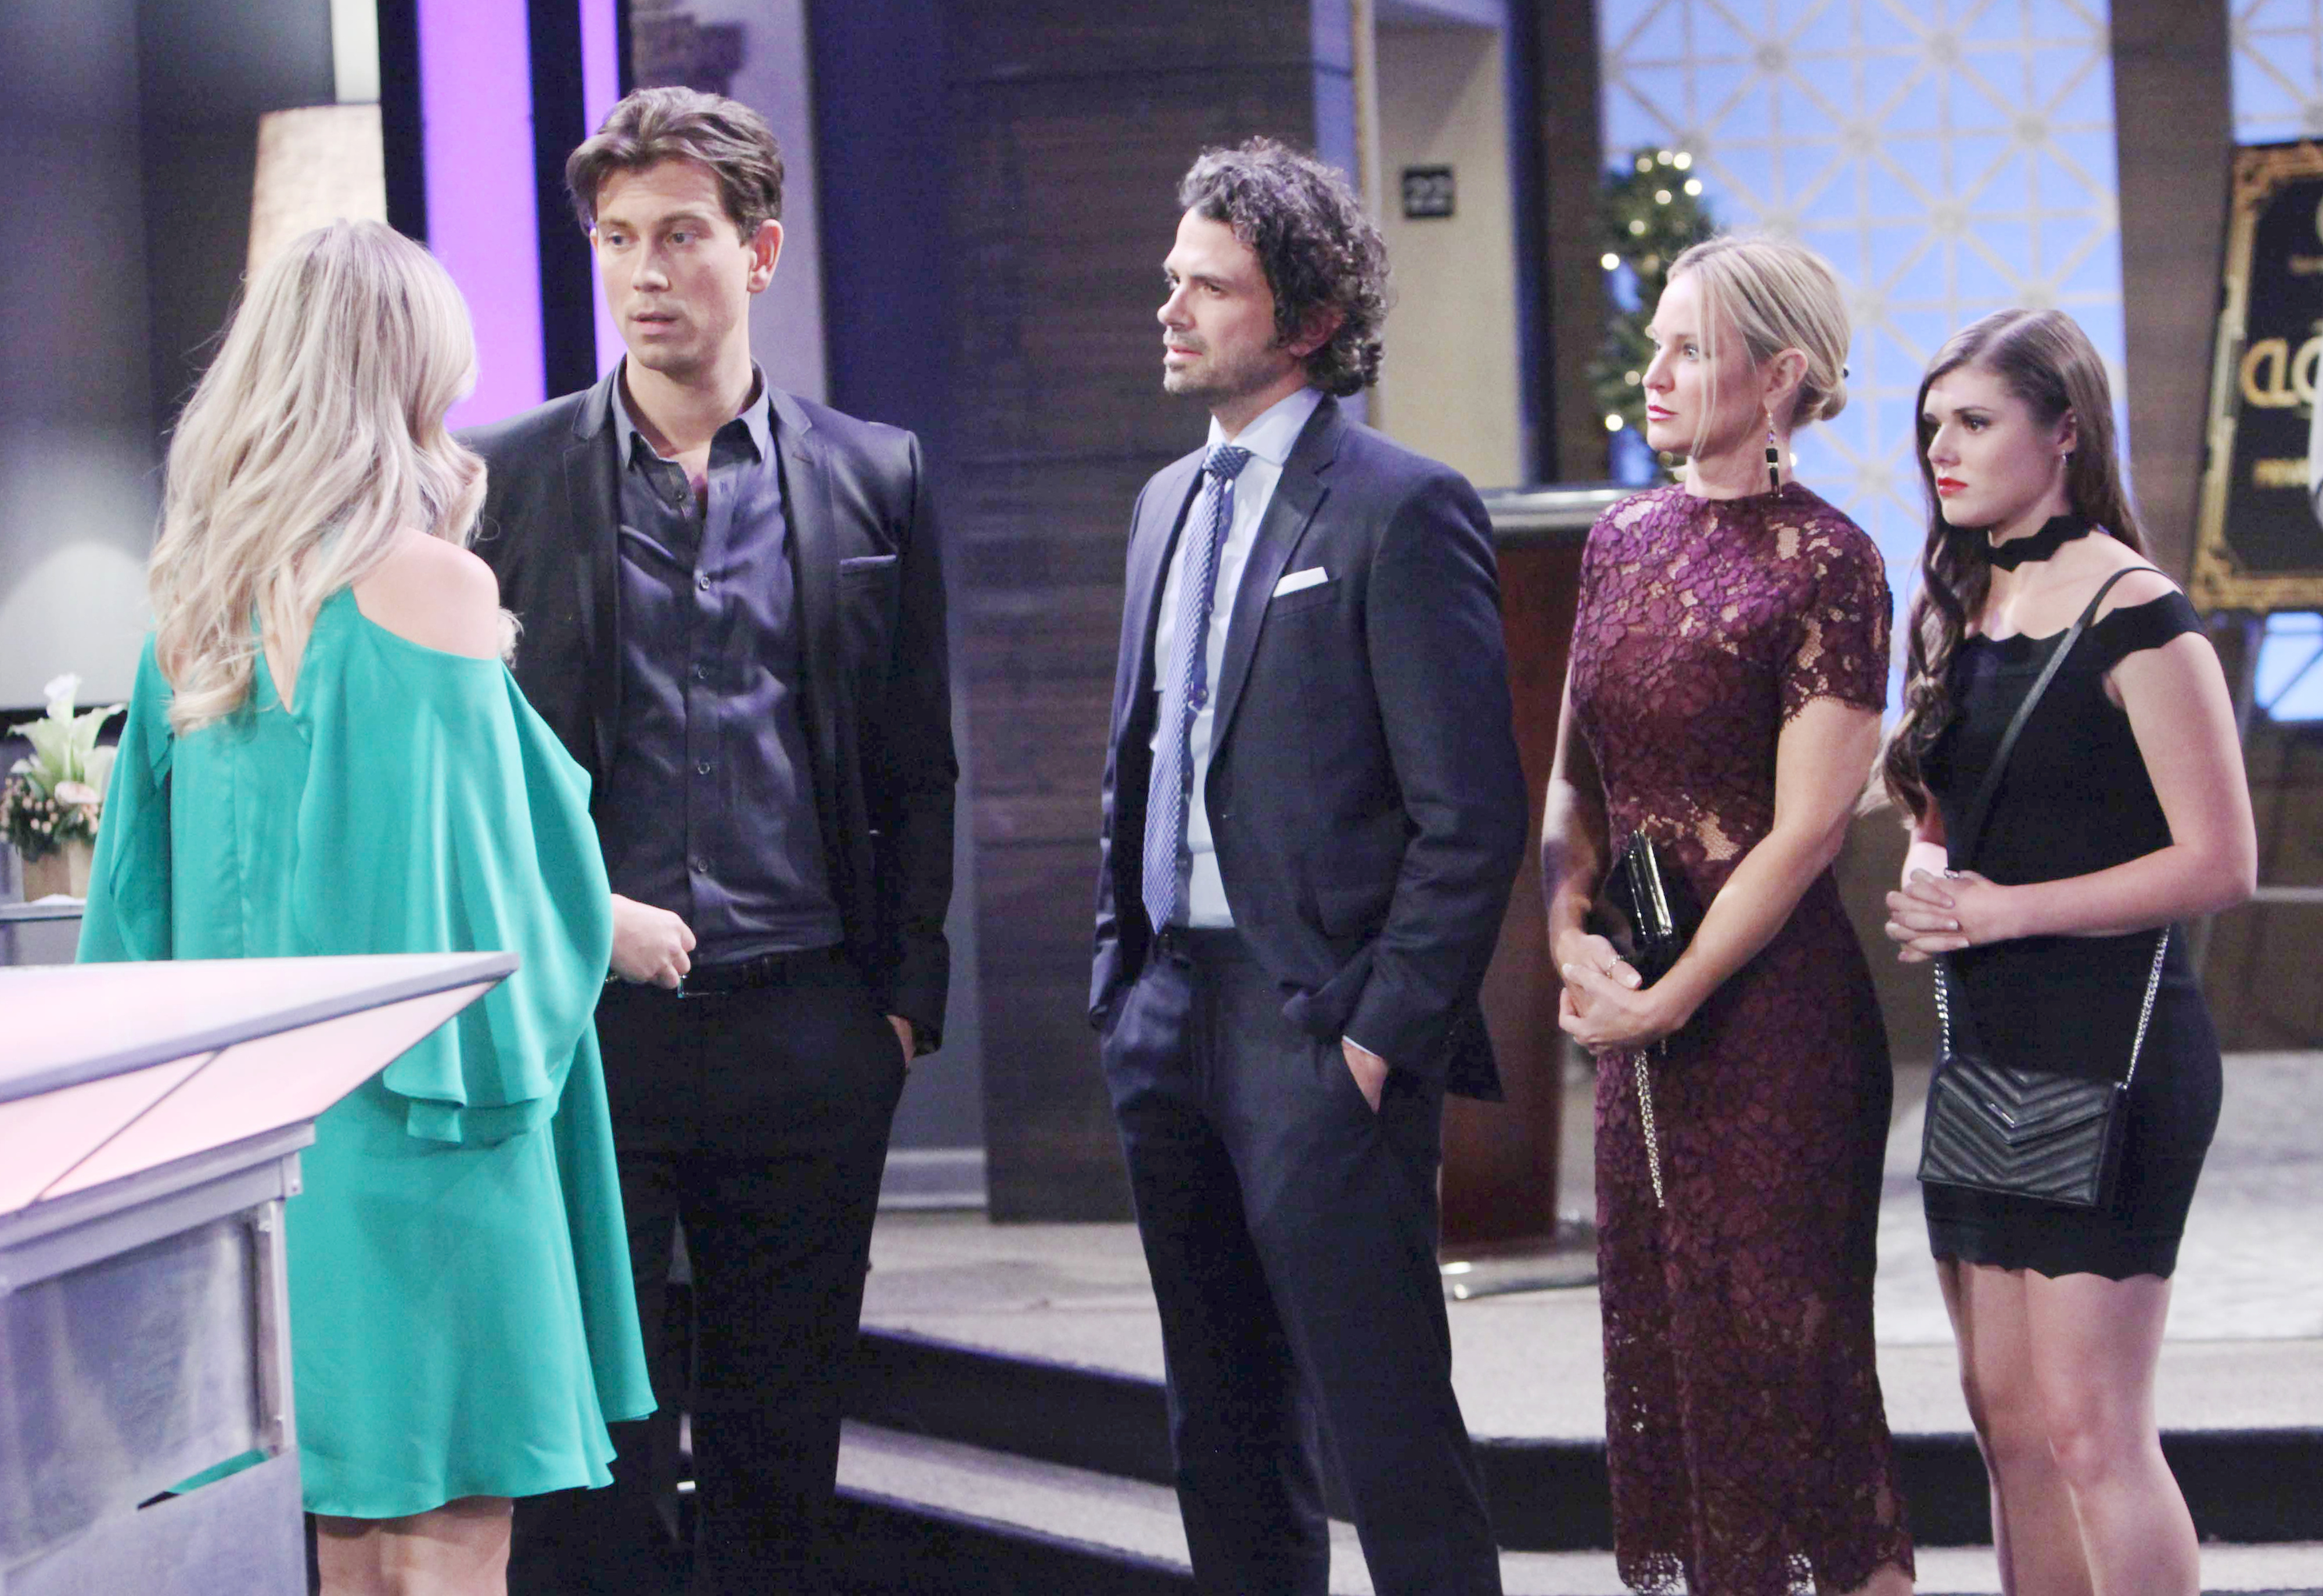 The Young and the Restless Spoilers: Coming Up November 10th –November 16th